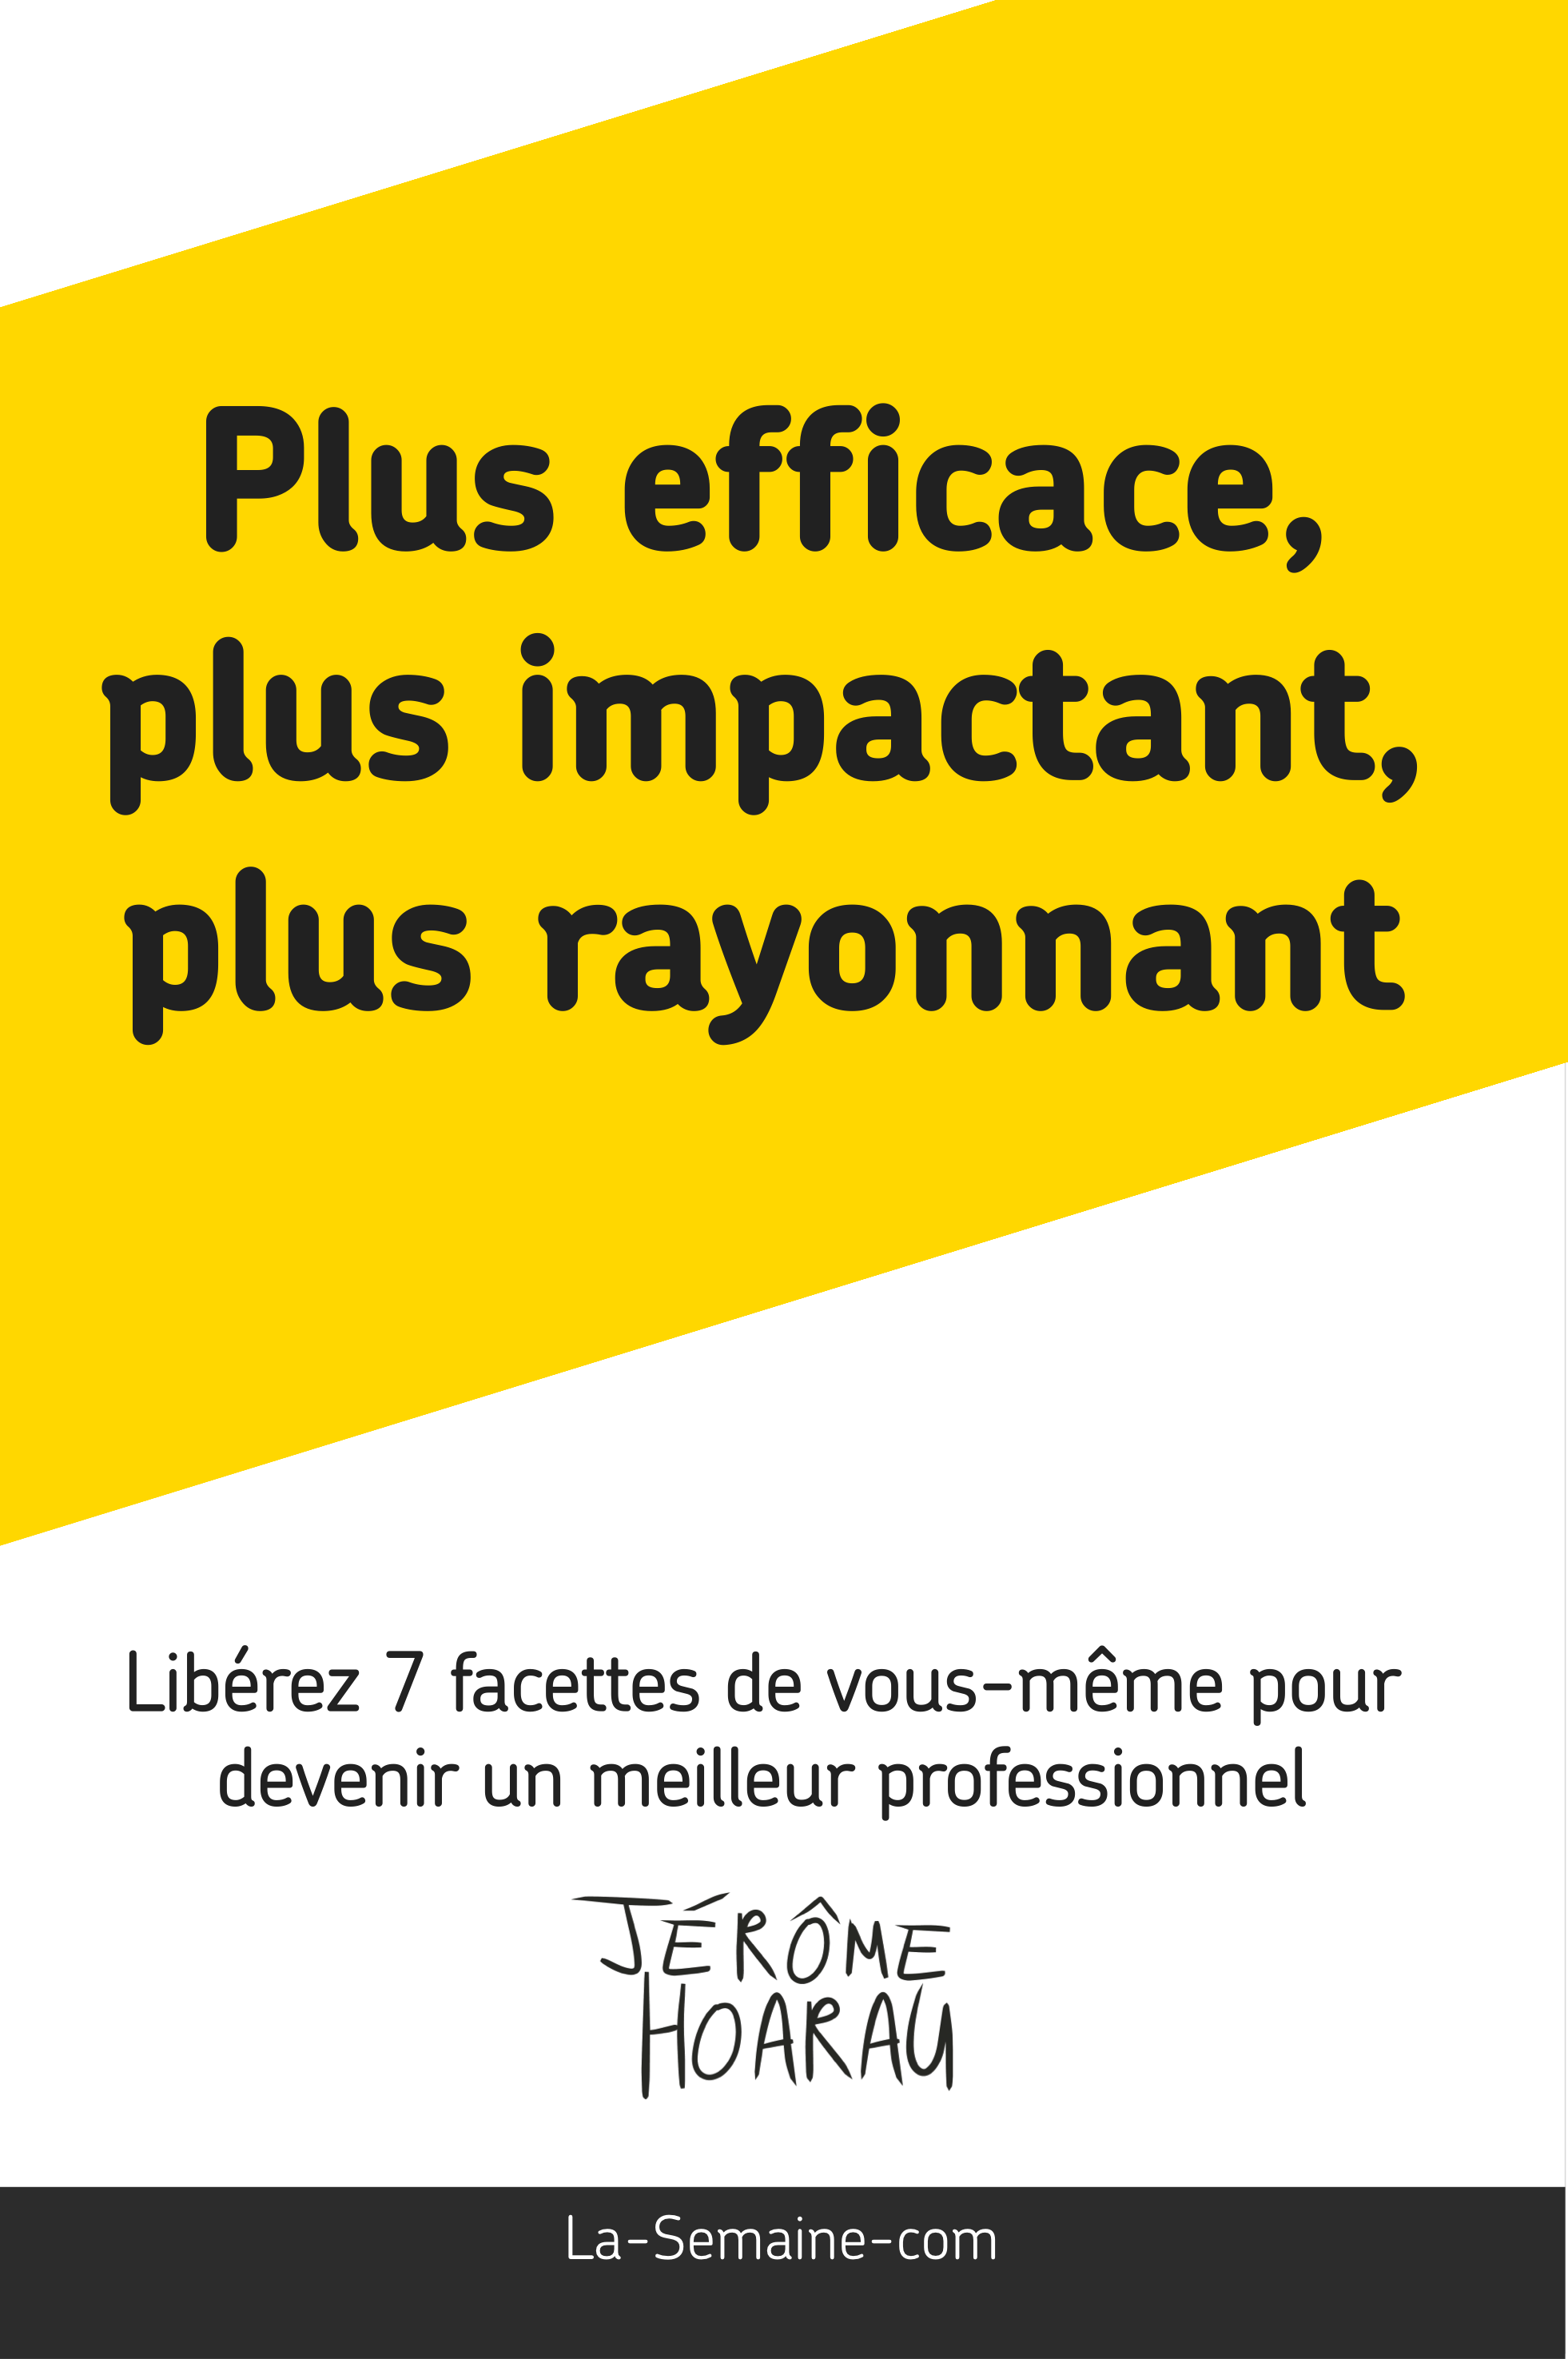 Plus efficace, plus impactant, plus rayonnant